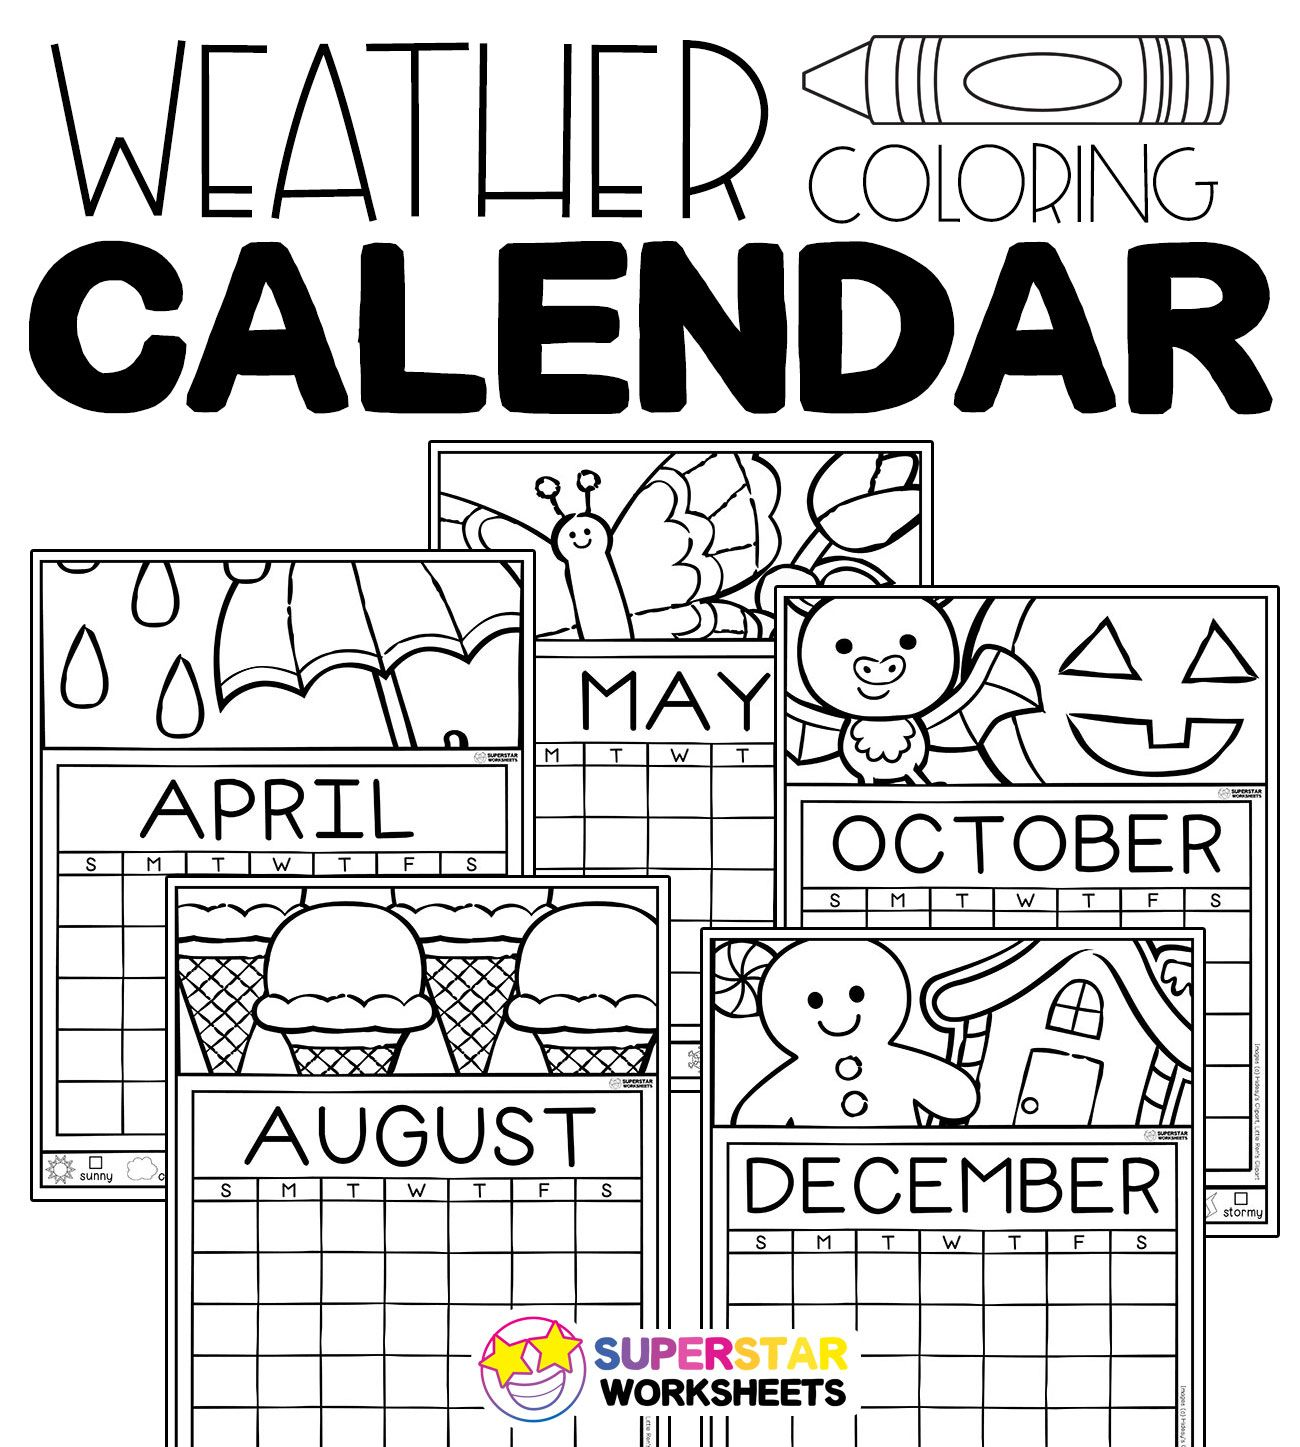 Print this free Color-In Weather Tracking Calendar set